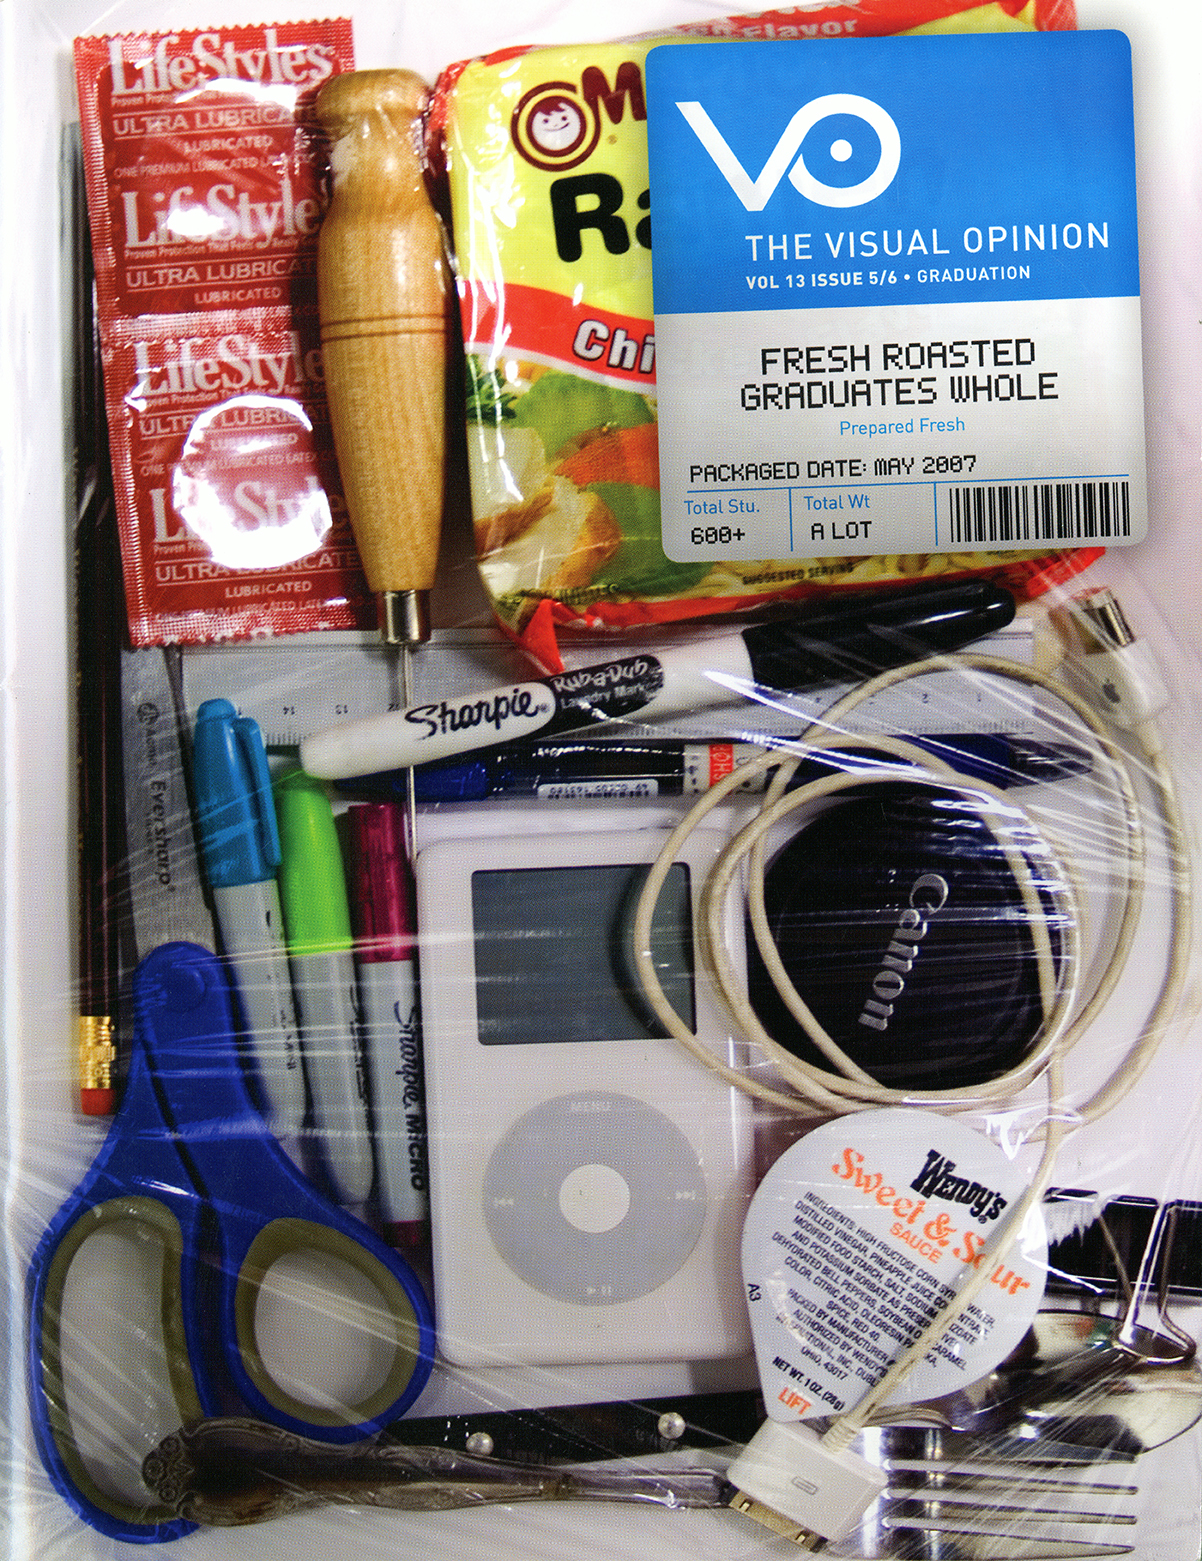 Typical recent art-school graduate items (condoms, ramen noodles, art supplies, an iPod, etc.) packaged together in a foam tray like pre-packaged meat.